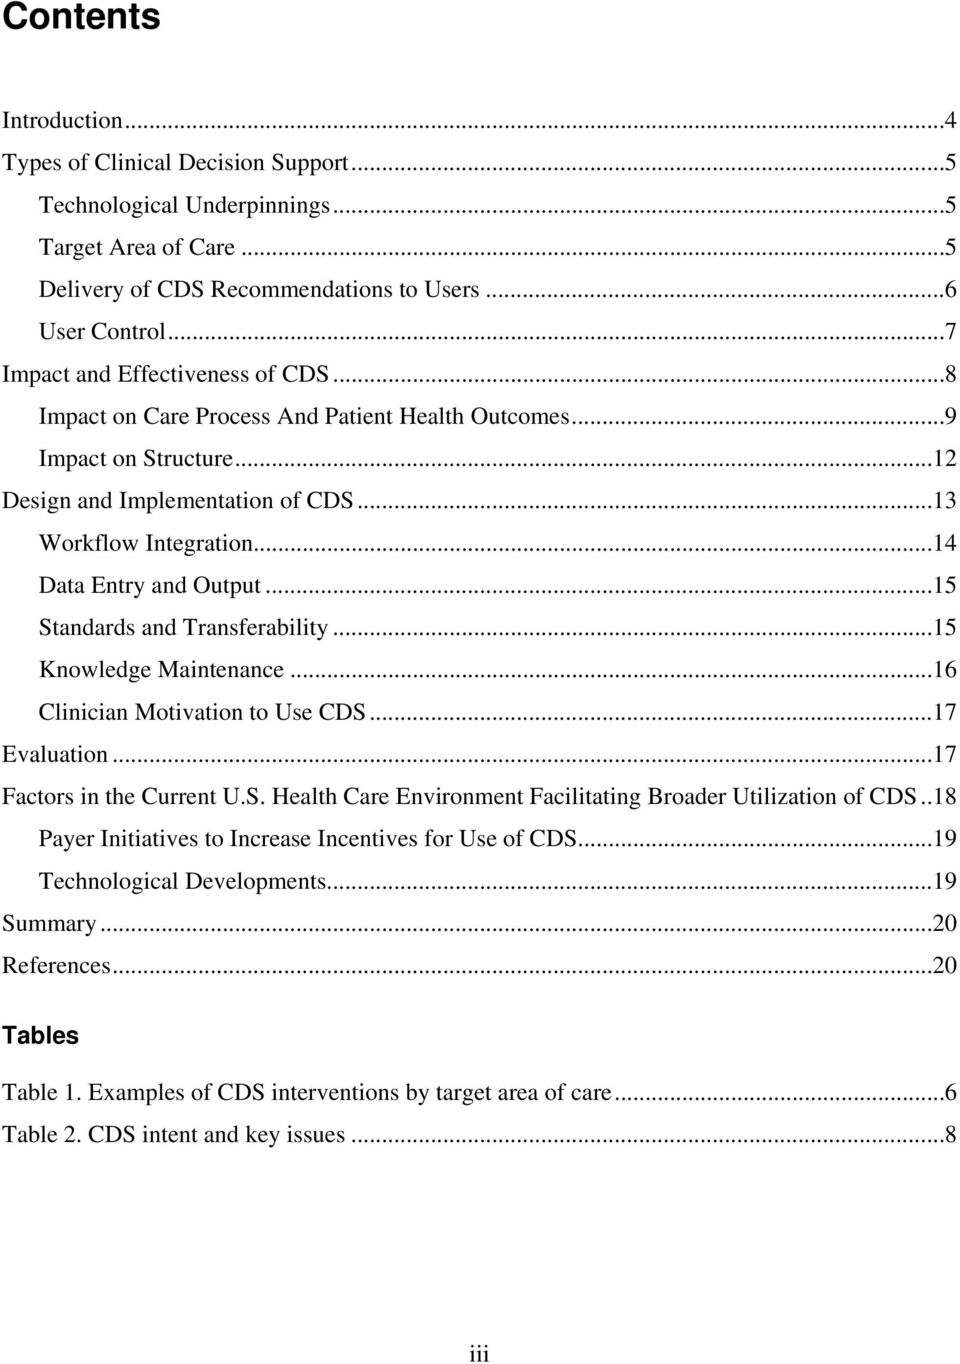 ..14 Data Entry and Output...15 Standards and Transferability...15 Knowledge Maintenance...16 Clinician Motivation to Use CDS...17 Evaluation...17 Factors in the Current U.S. Health Care Environment Facilitating Broader Utilization of CDS.